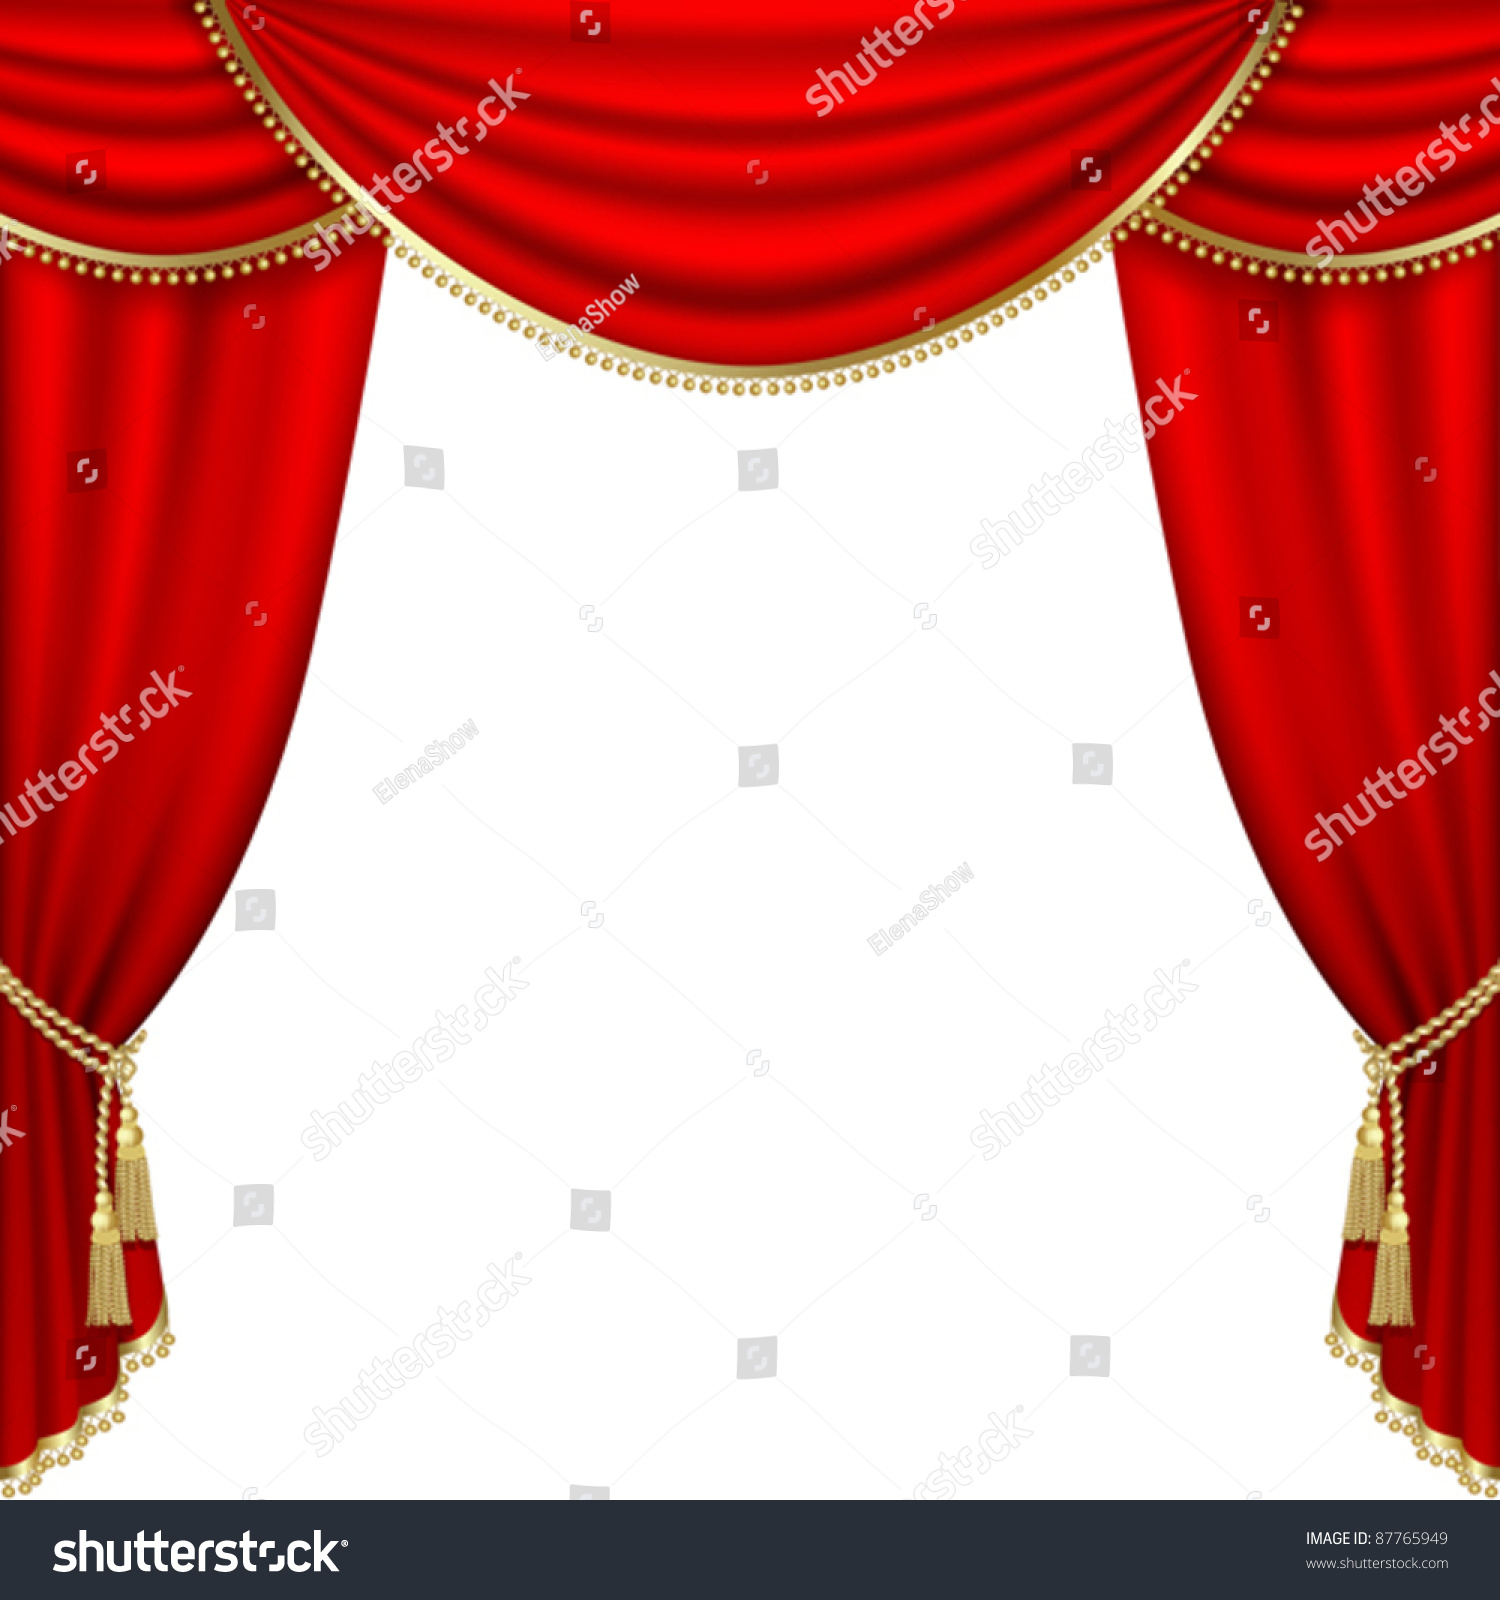 Opening and closing red curtain stock animation royalty free stock - Red Stage Curtains Royalty Free Stock Images Image 4759529 Real Theater Curtains Theater Stage With